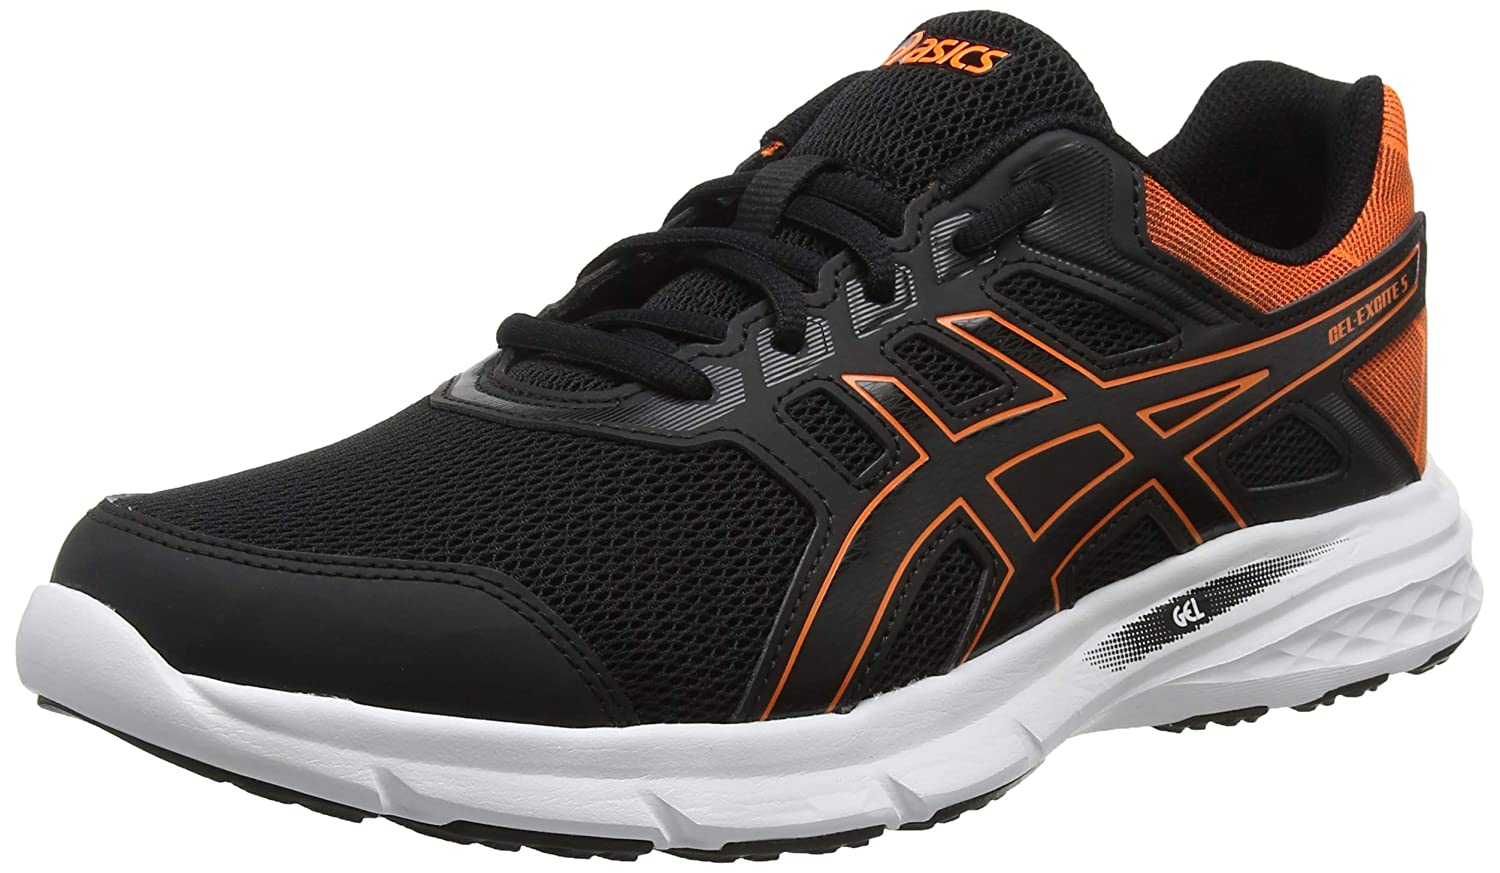 Asics Gel-Excite 5, Zapatillas de Entrenamiento para Hombre 48 EU|Negro (Black/Shocking Orange 001)